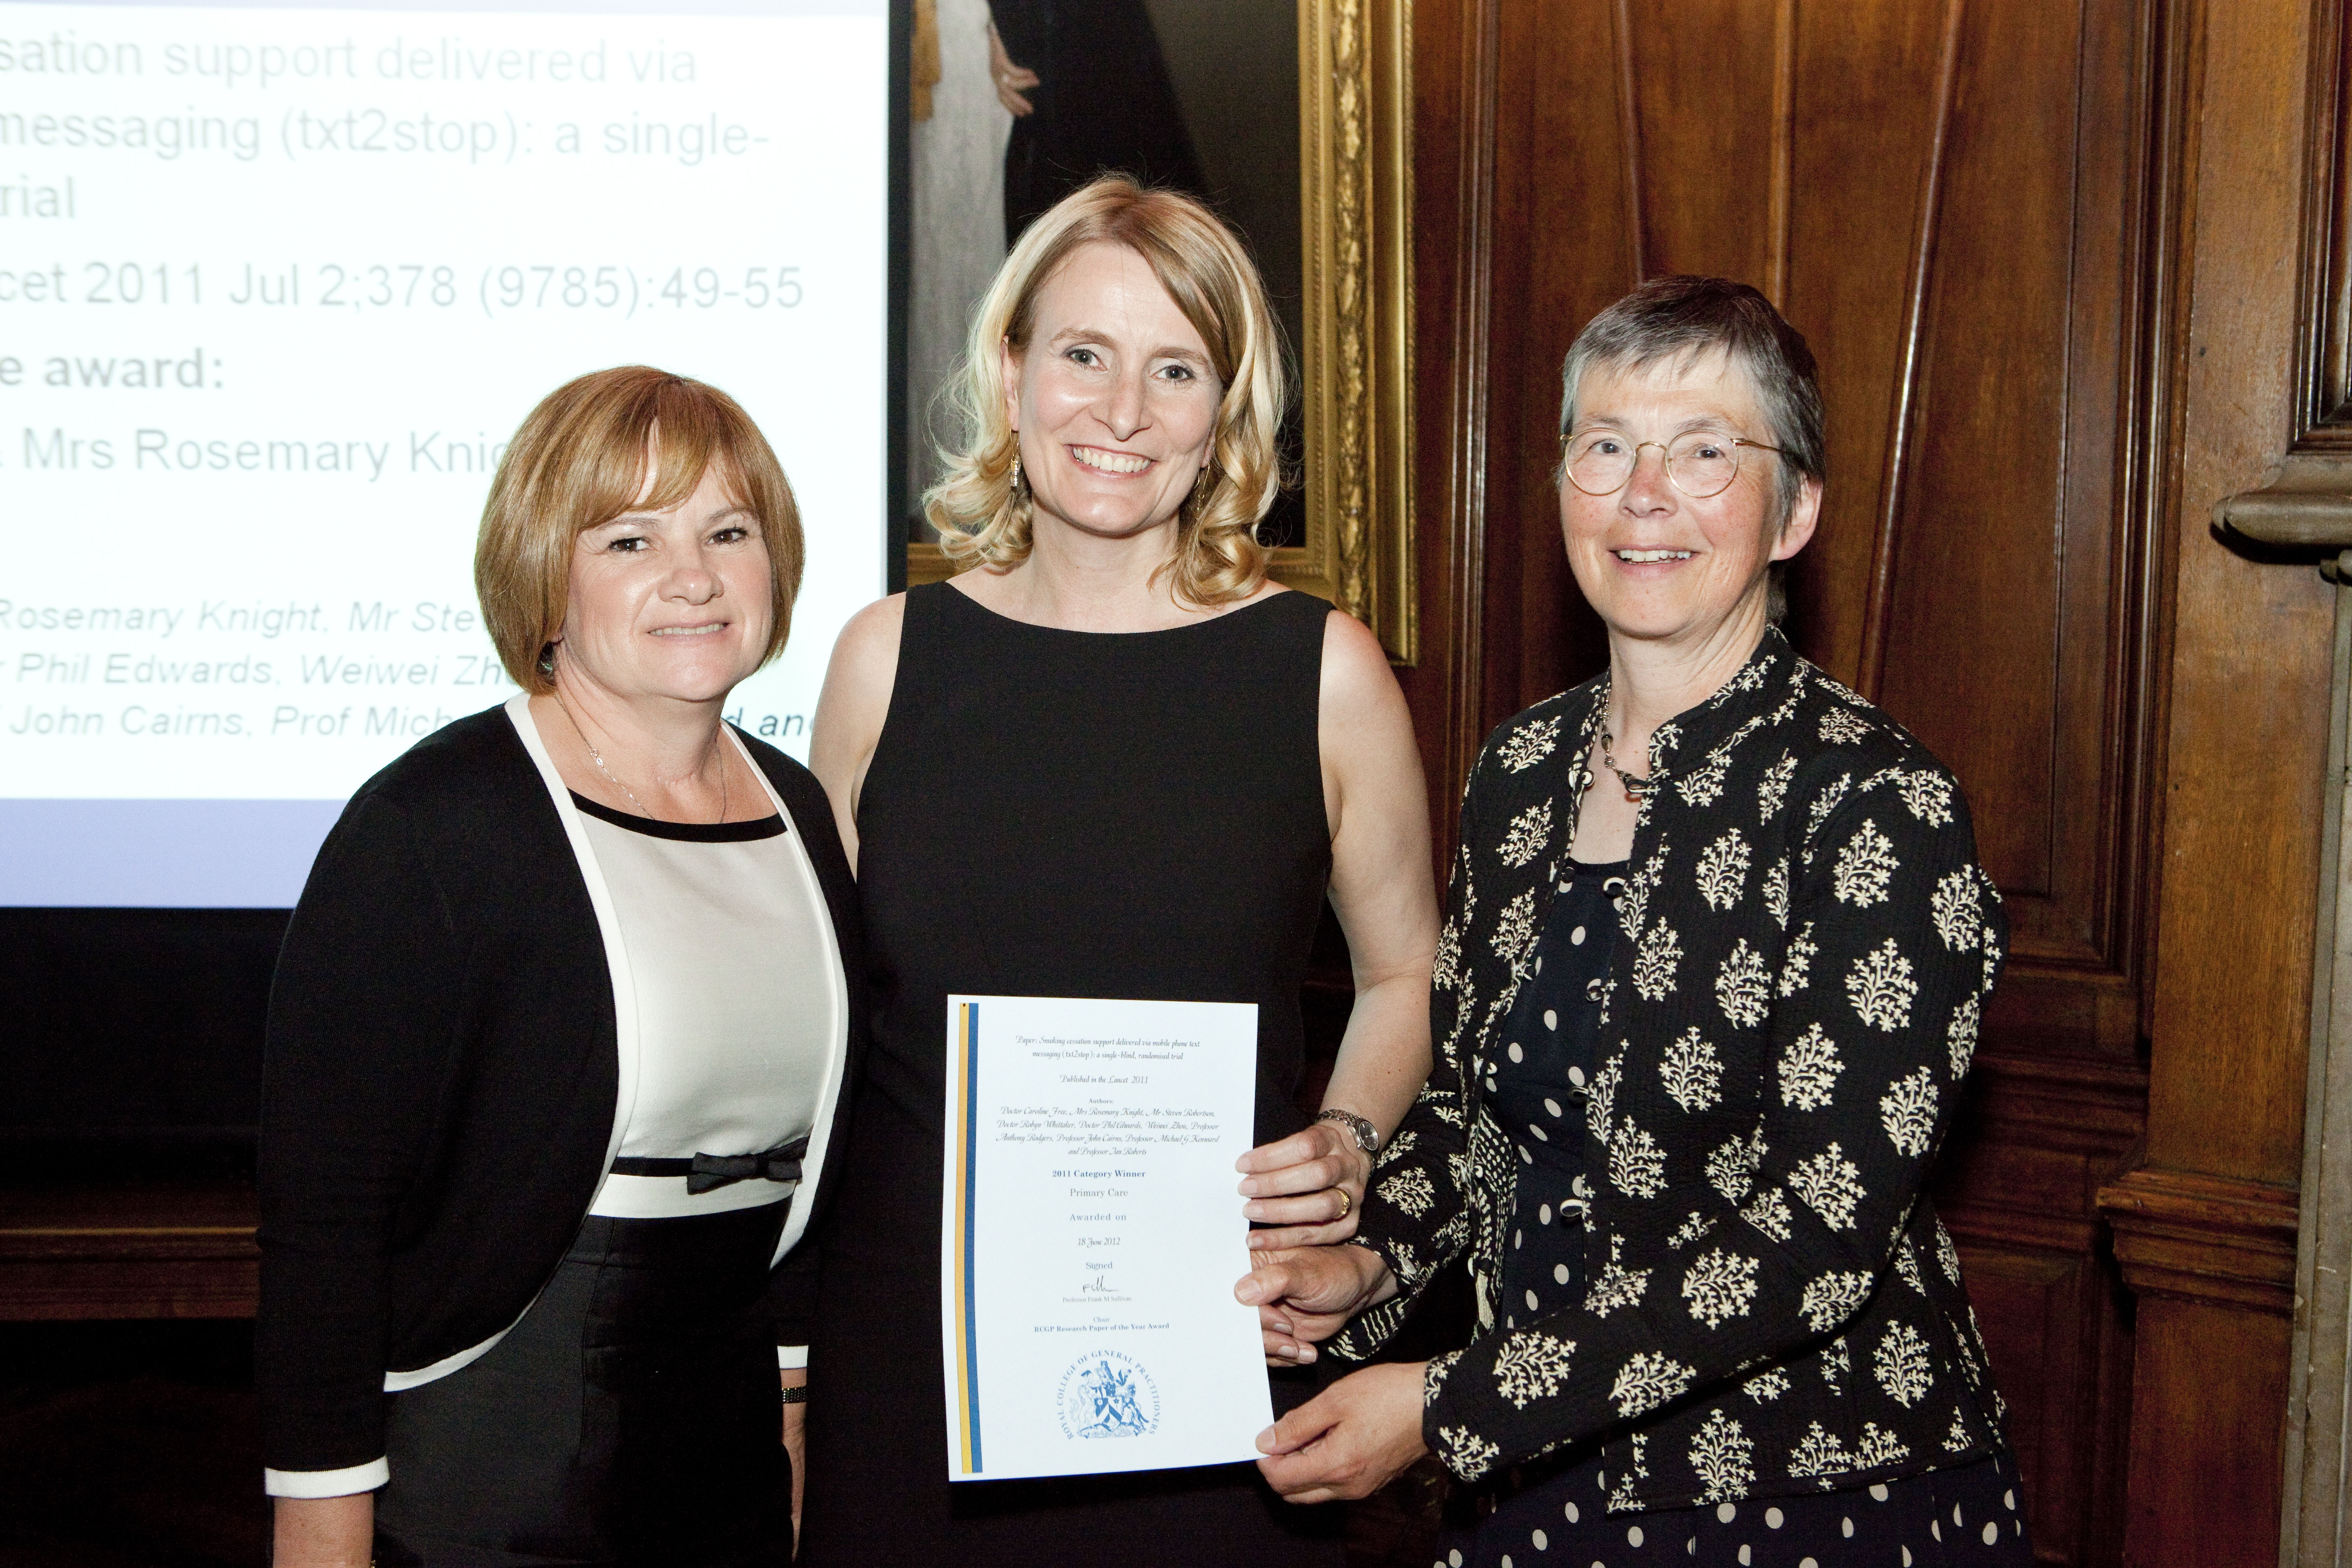 Dr Caroline Free and Mrs Rosemary Knight receiving the Research Paper of the Year Award from Dr Iona Heath, RCGP President